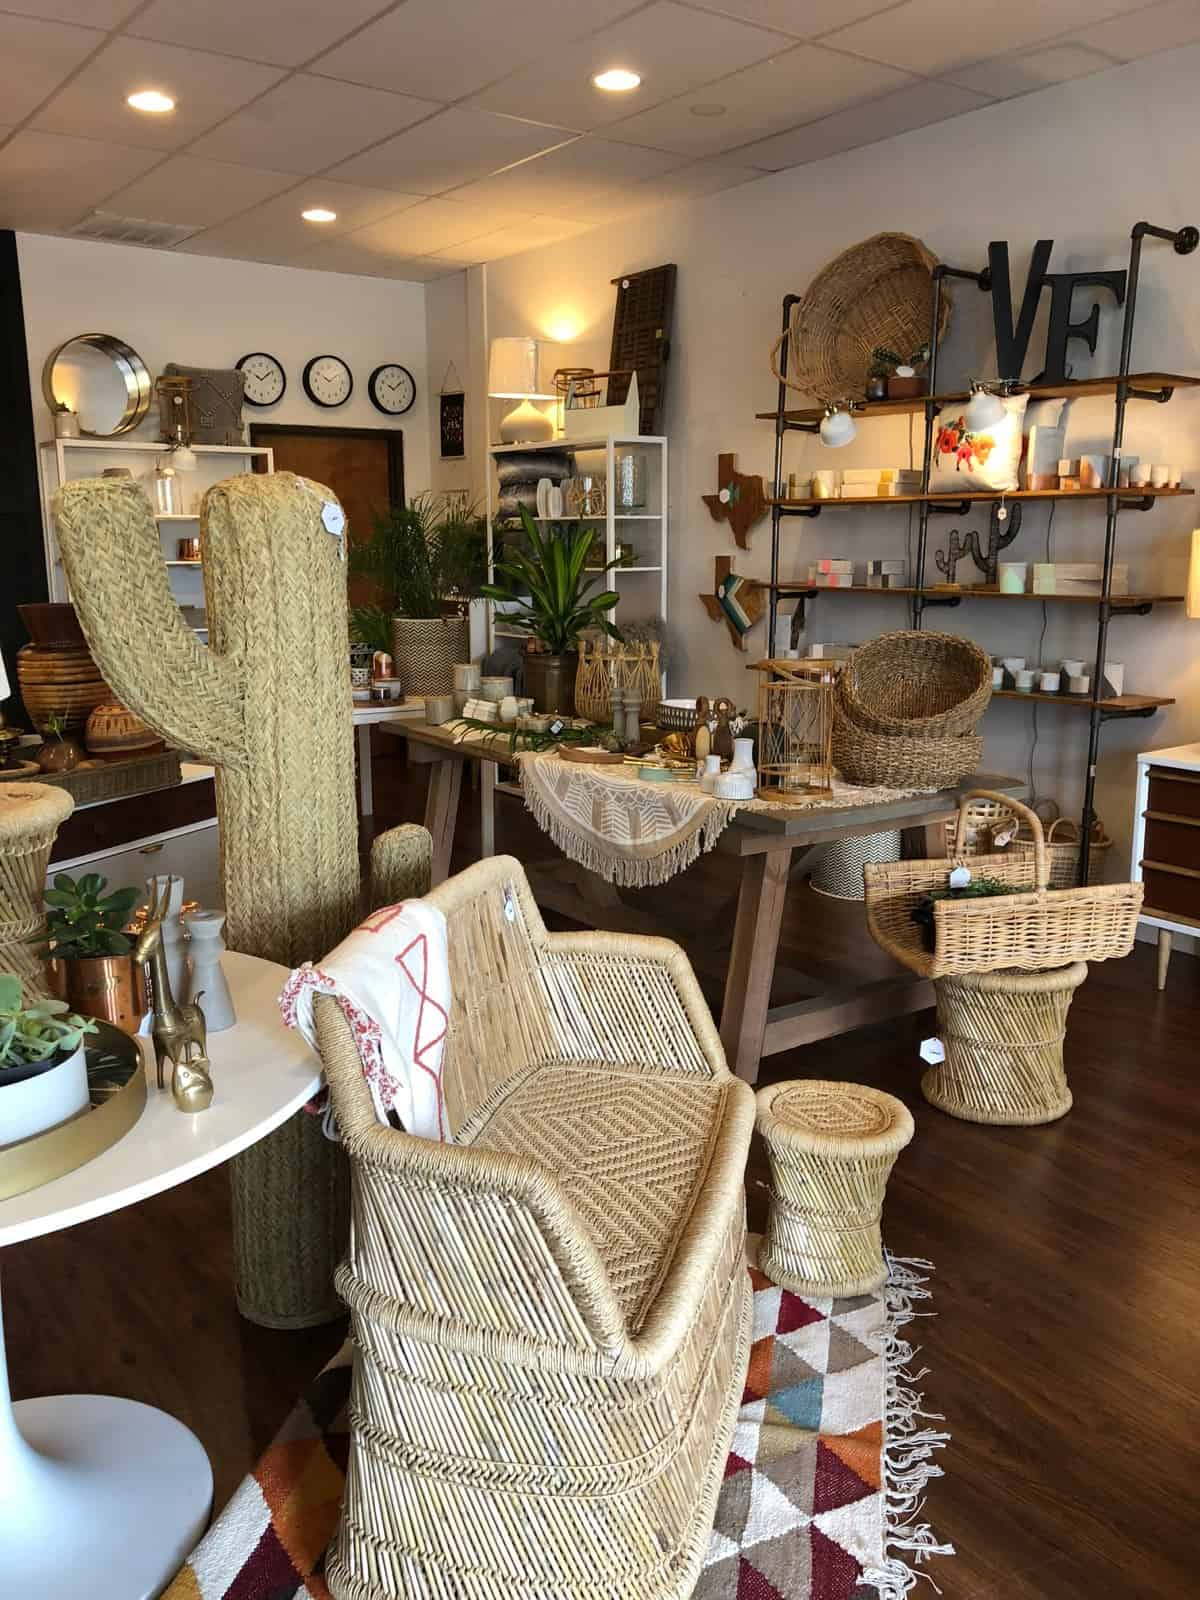 Inside of a cute vintage home store